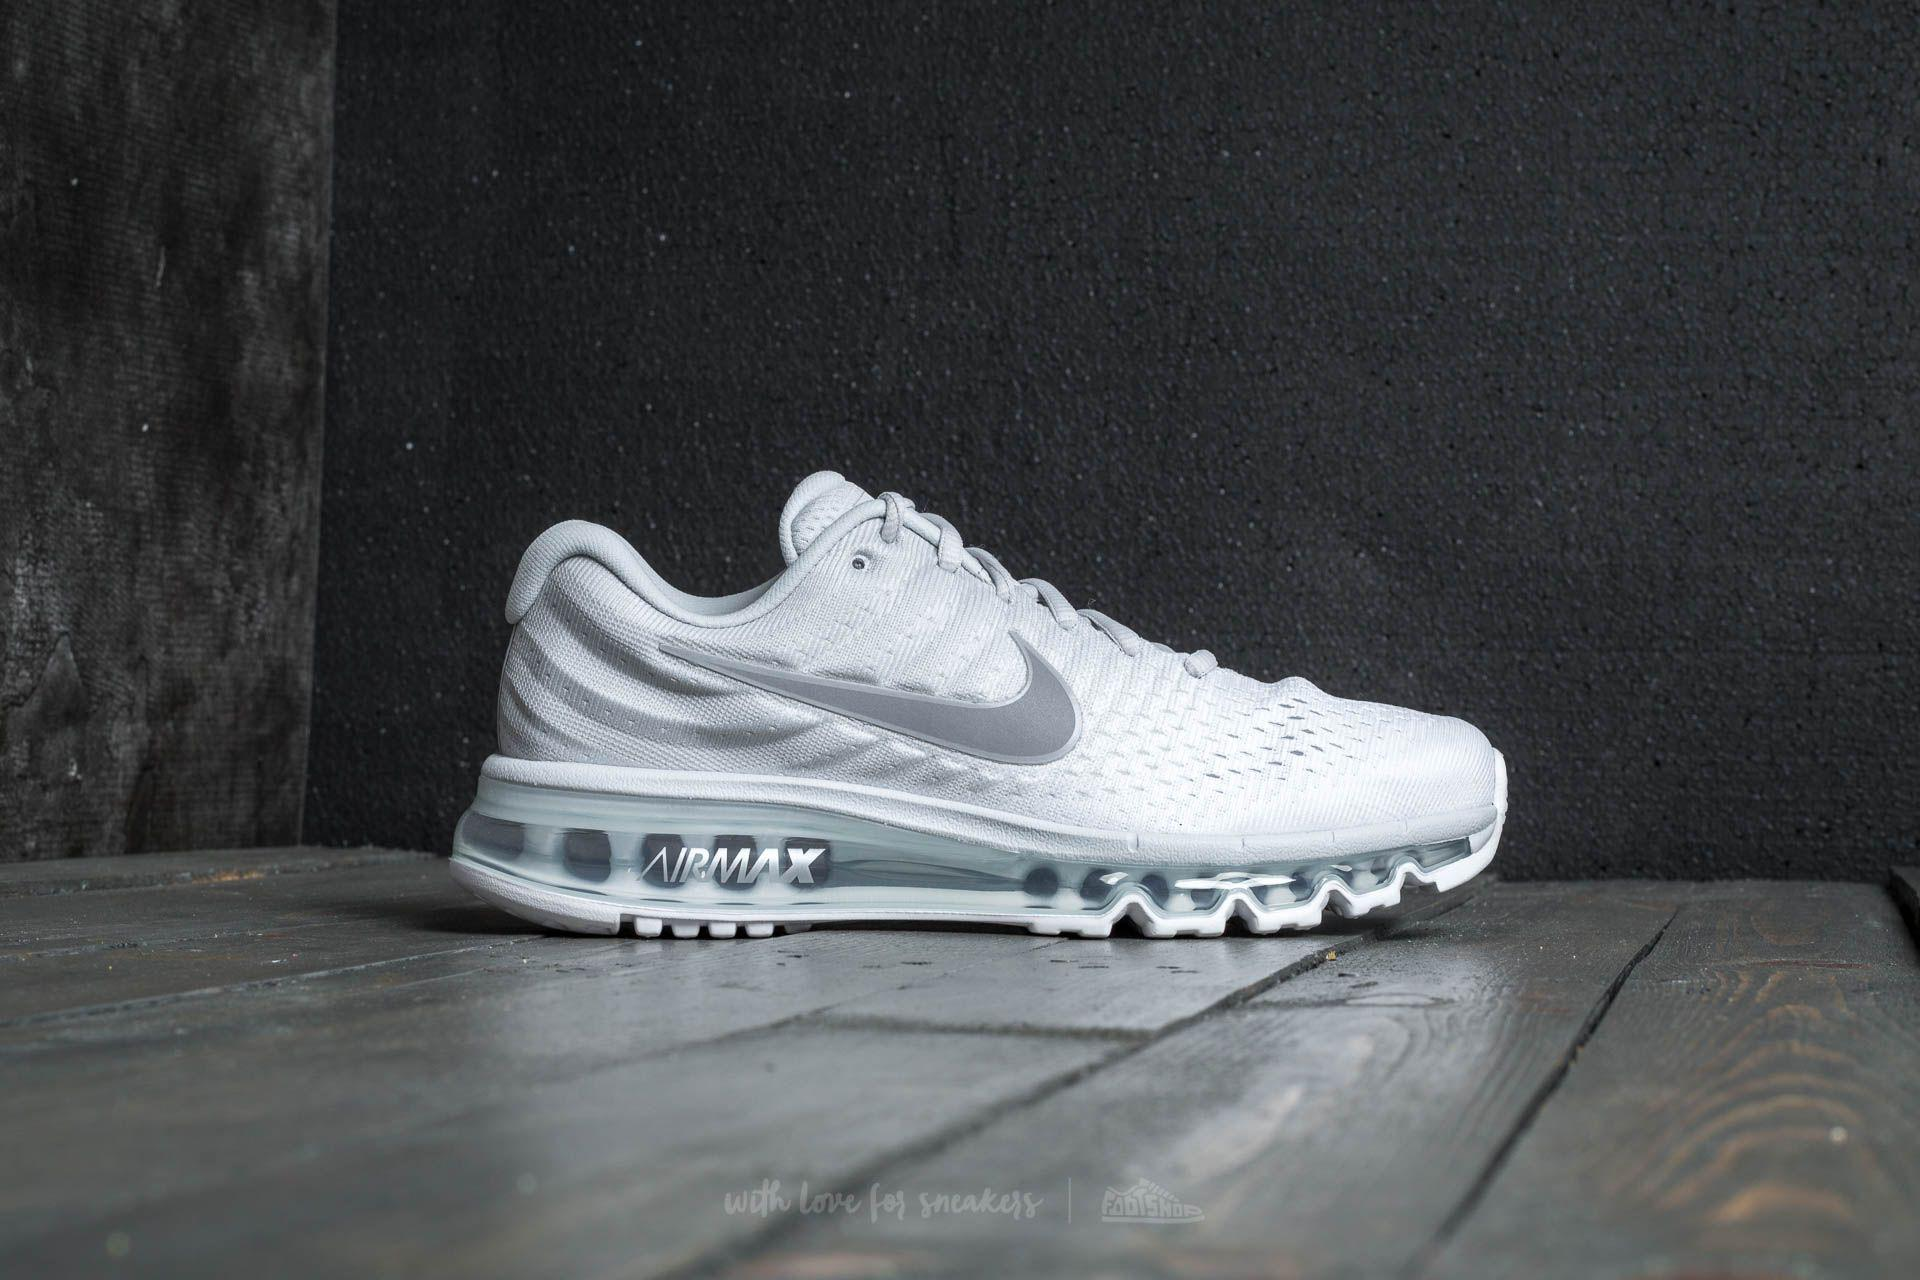 france nike air max 2017 wolf grey black 32b47 8fc1f